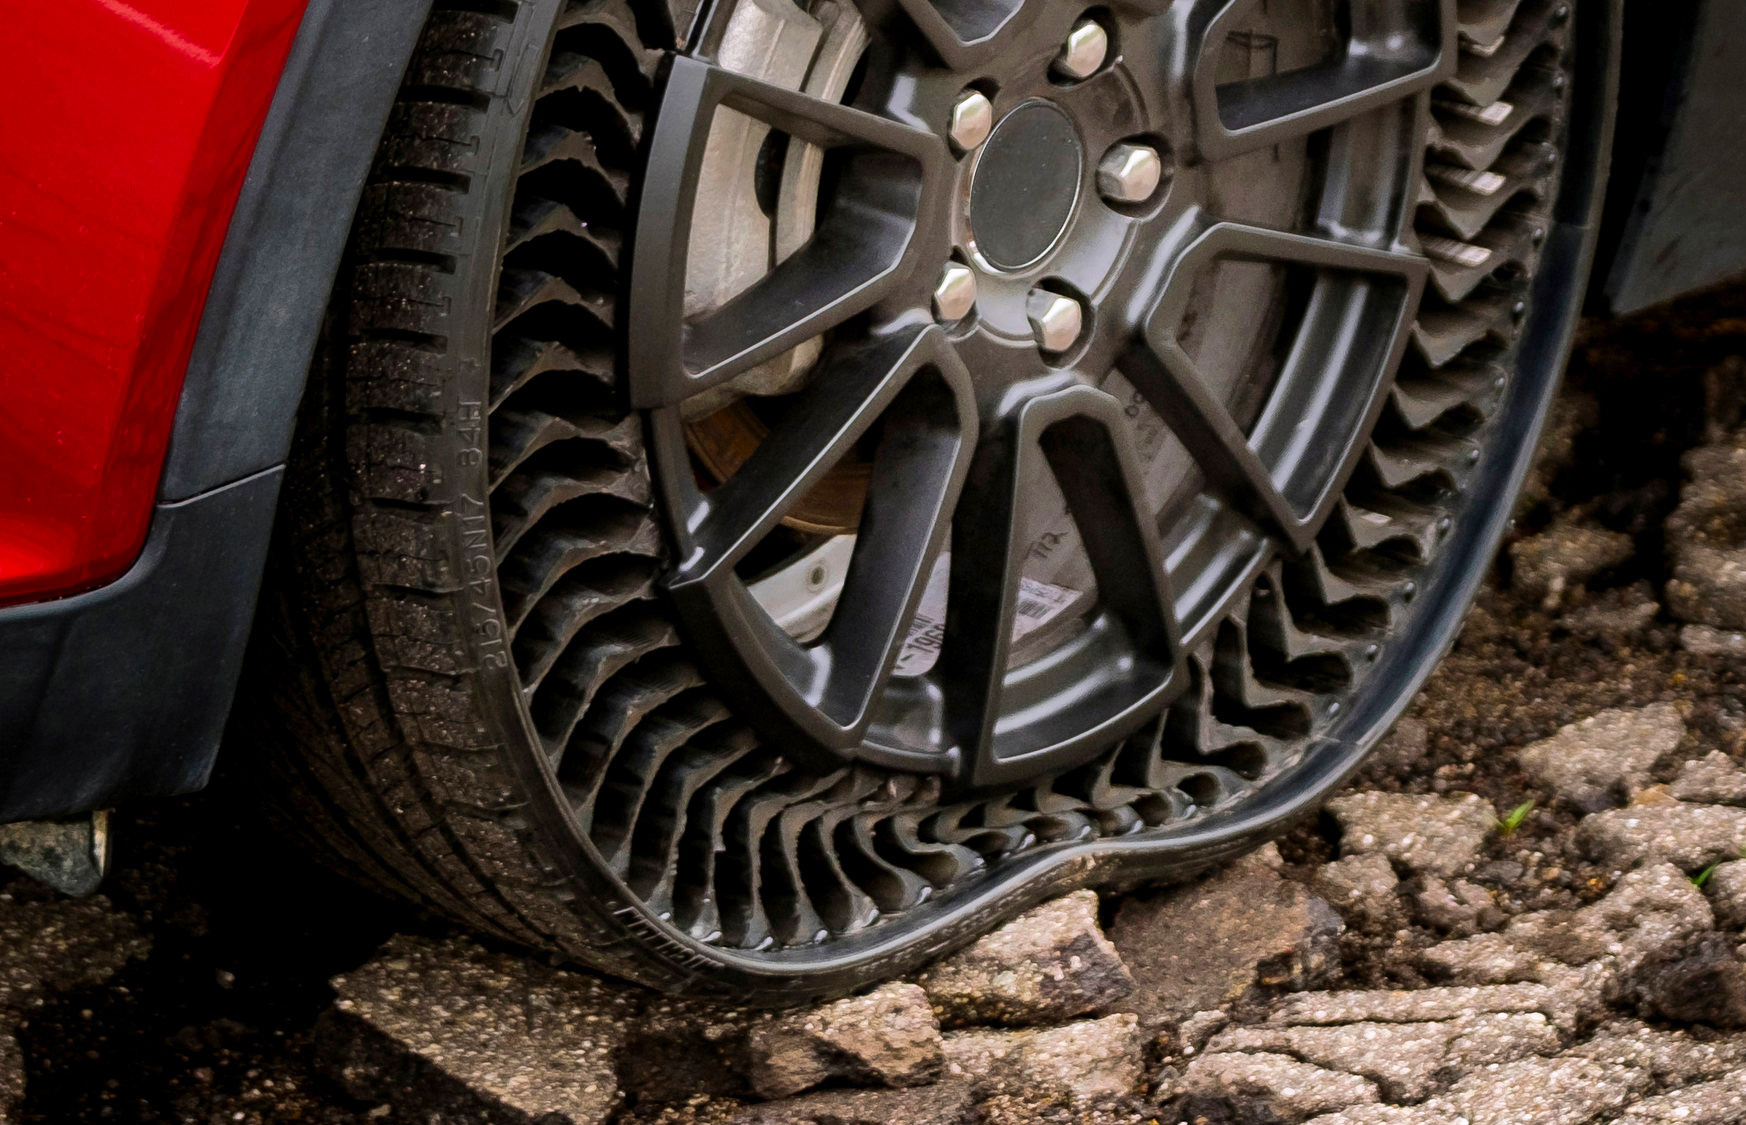 Michelin Rolls Out Airless, Puncture-Proof UPTIS Tires at werd.com